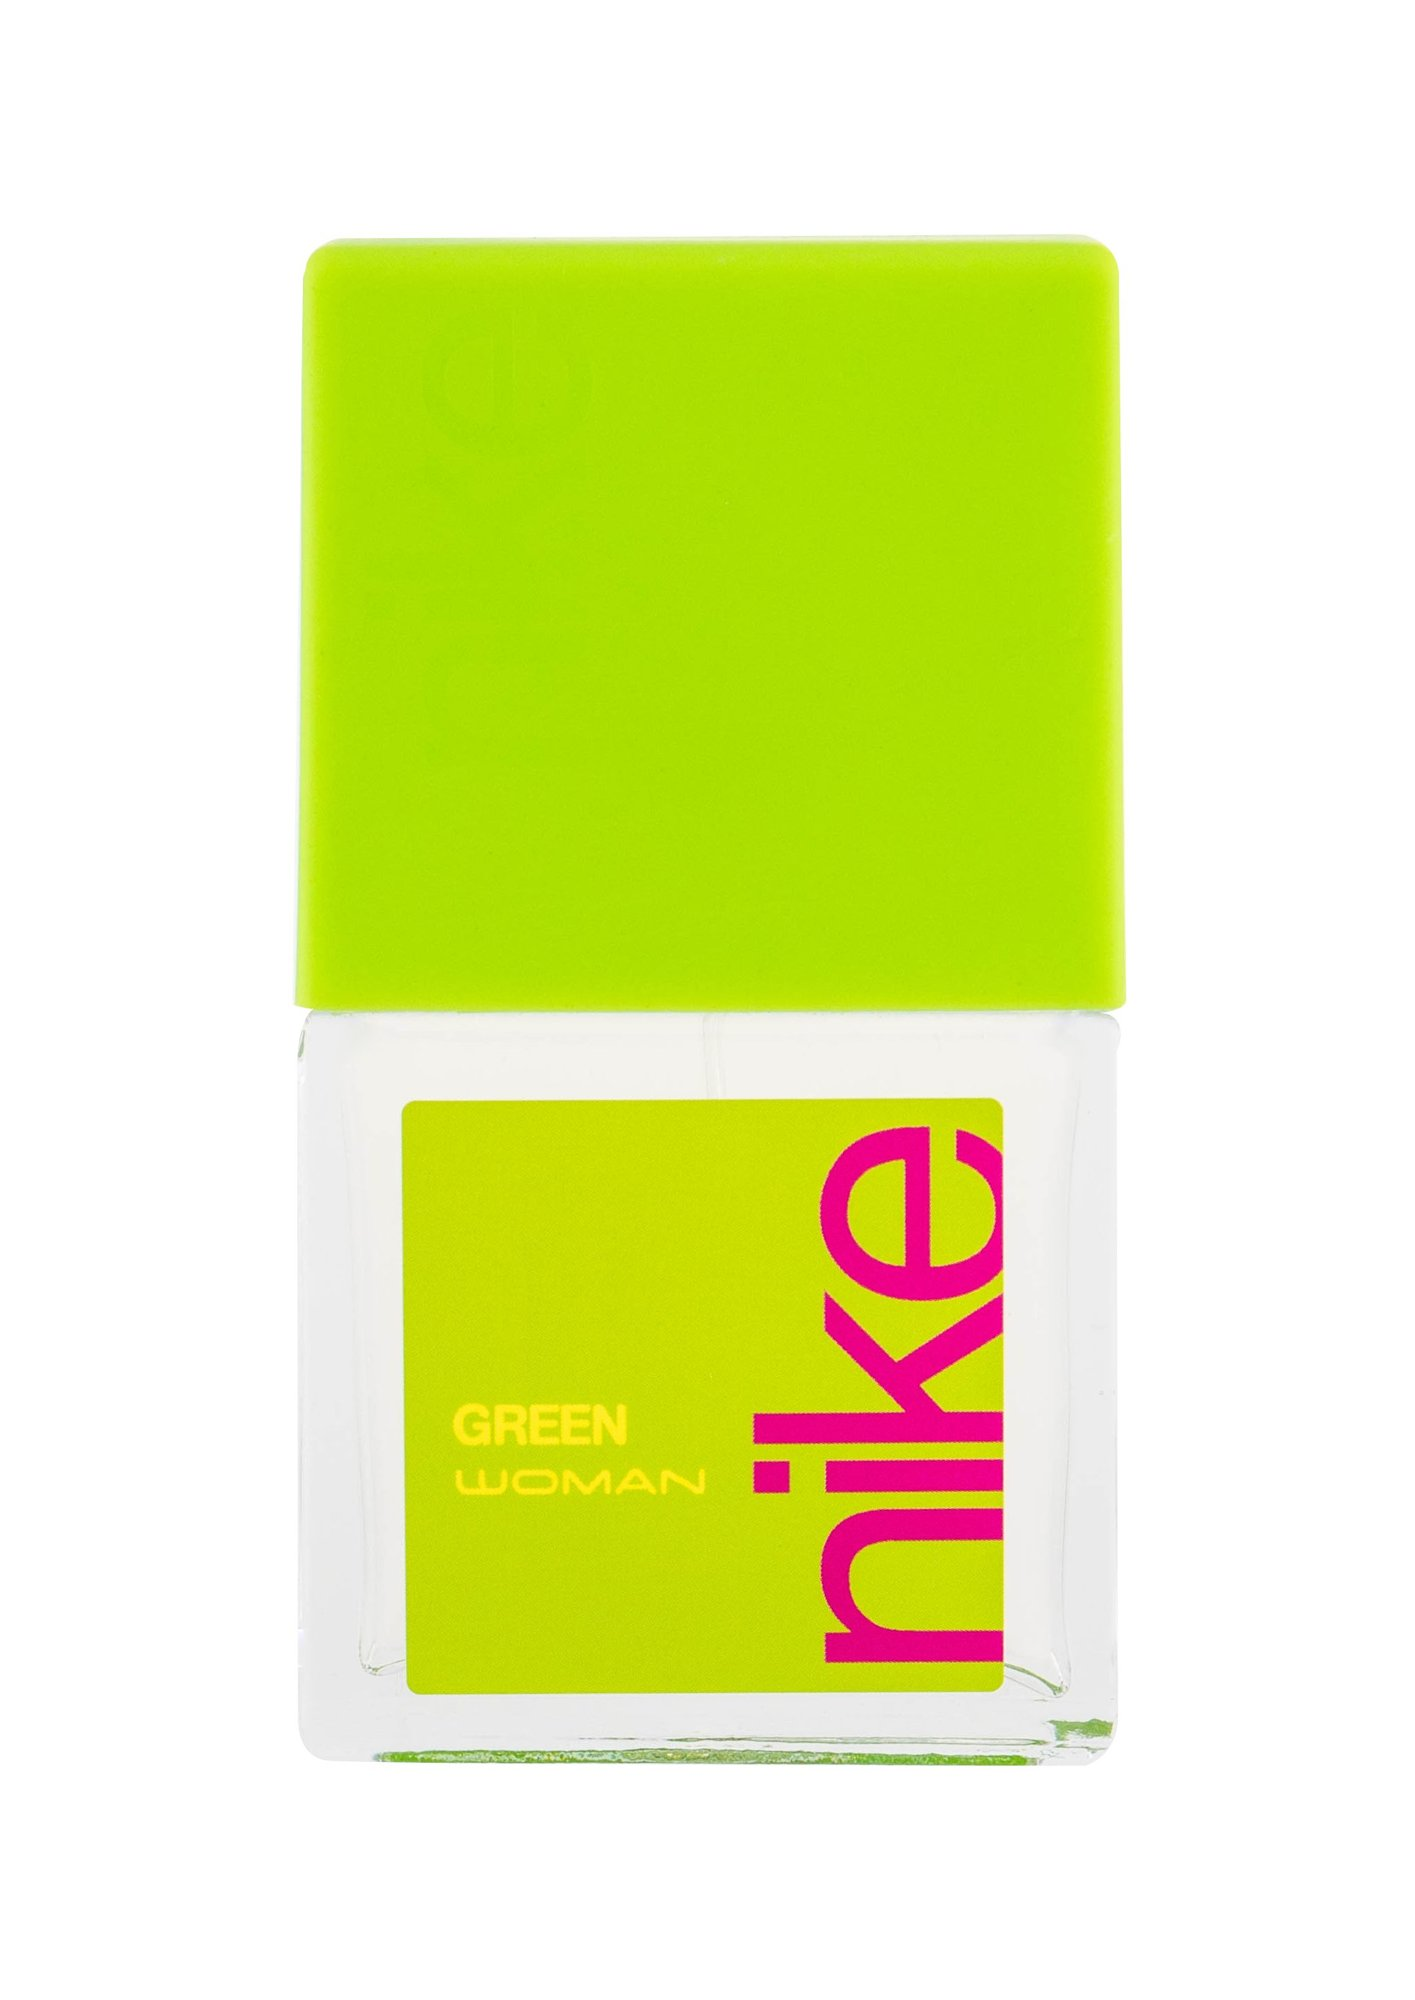 Nike Perfumes Green Woman Eau de Toilette 30ml